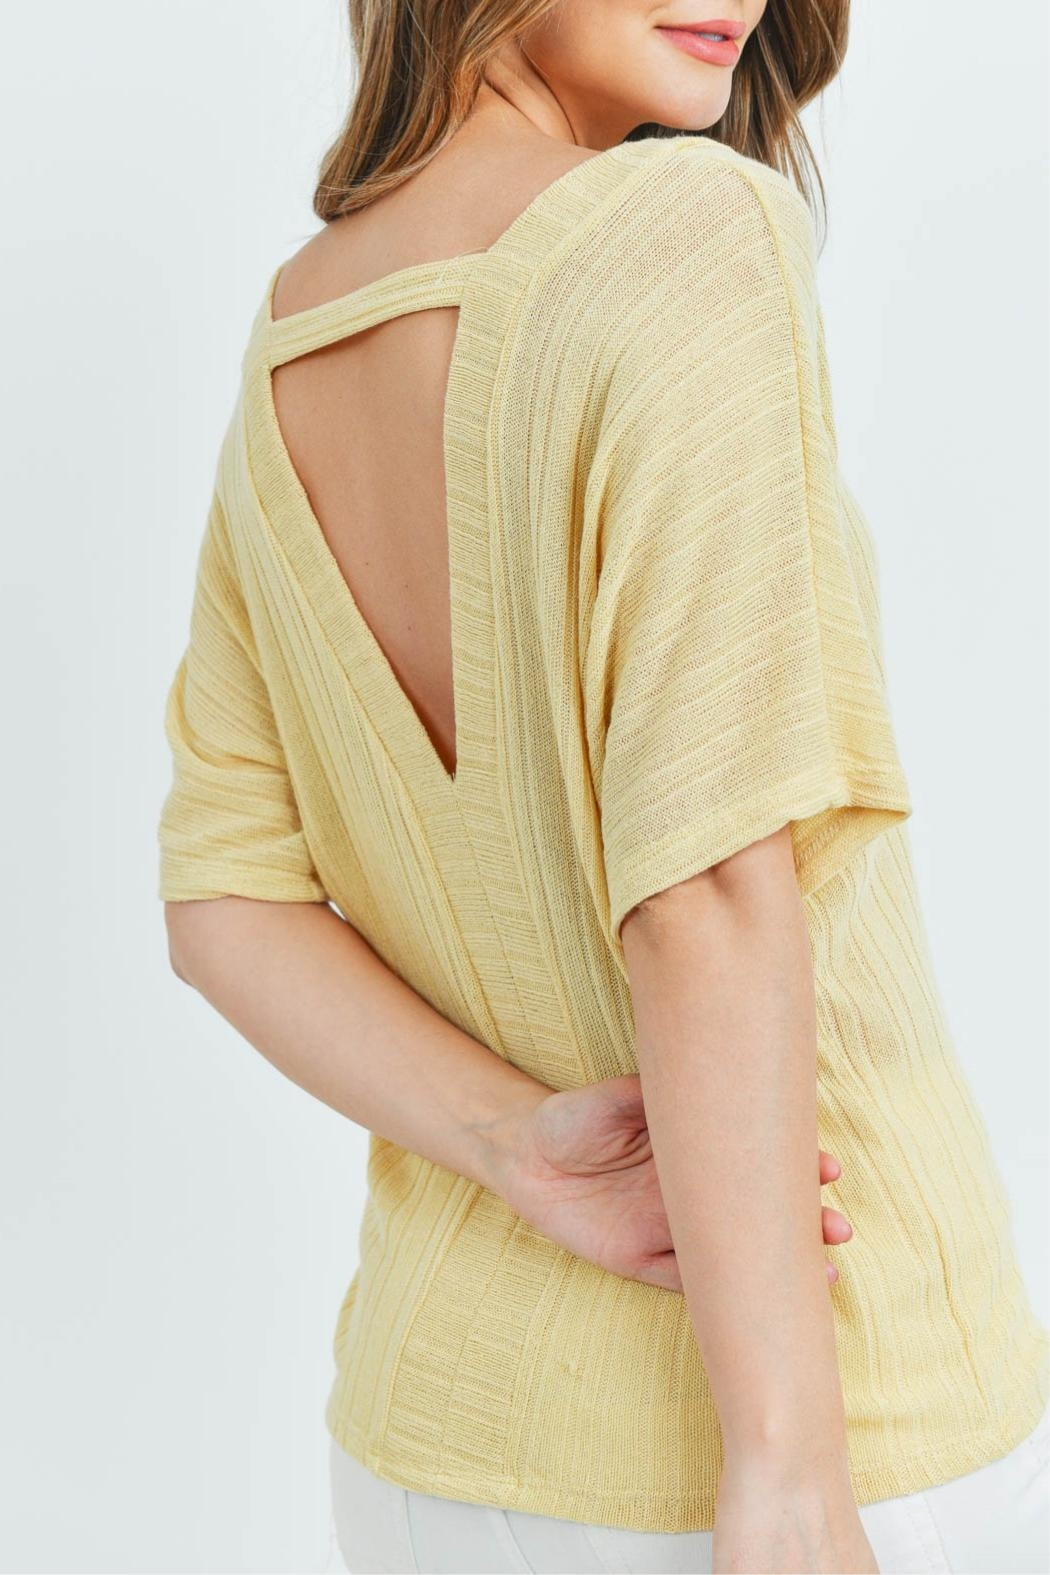 Ginger G Yellow Knit Top - Back Cropped Image